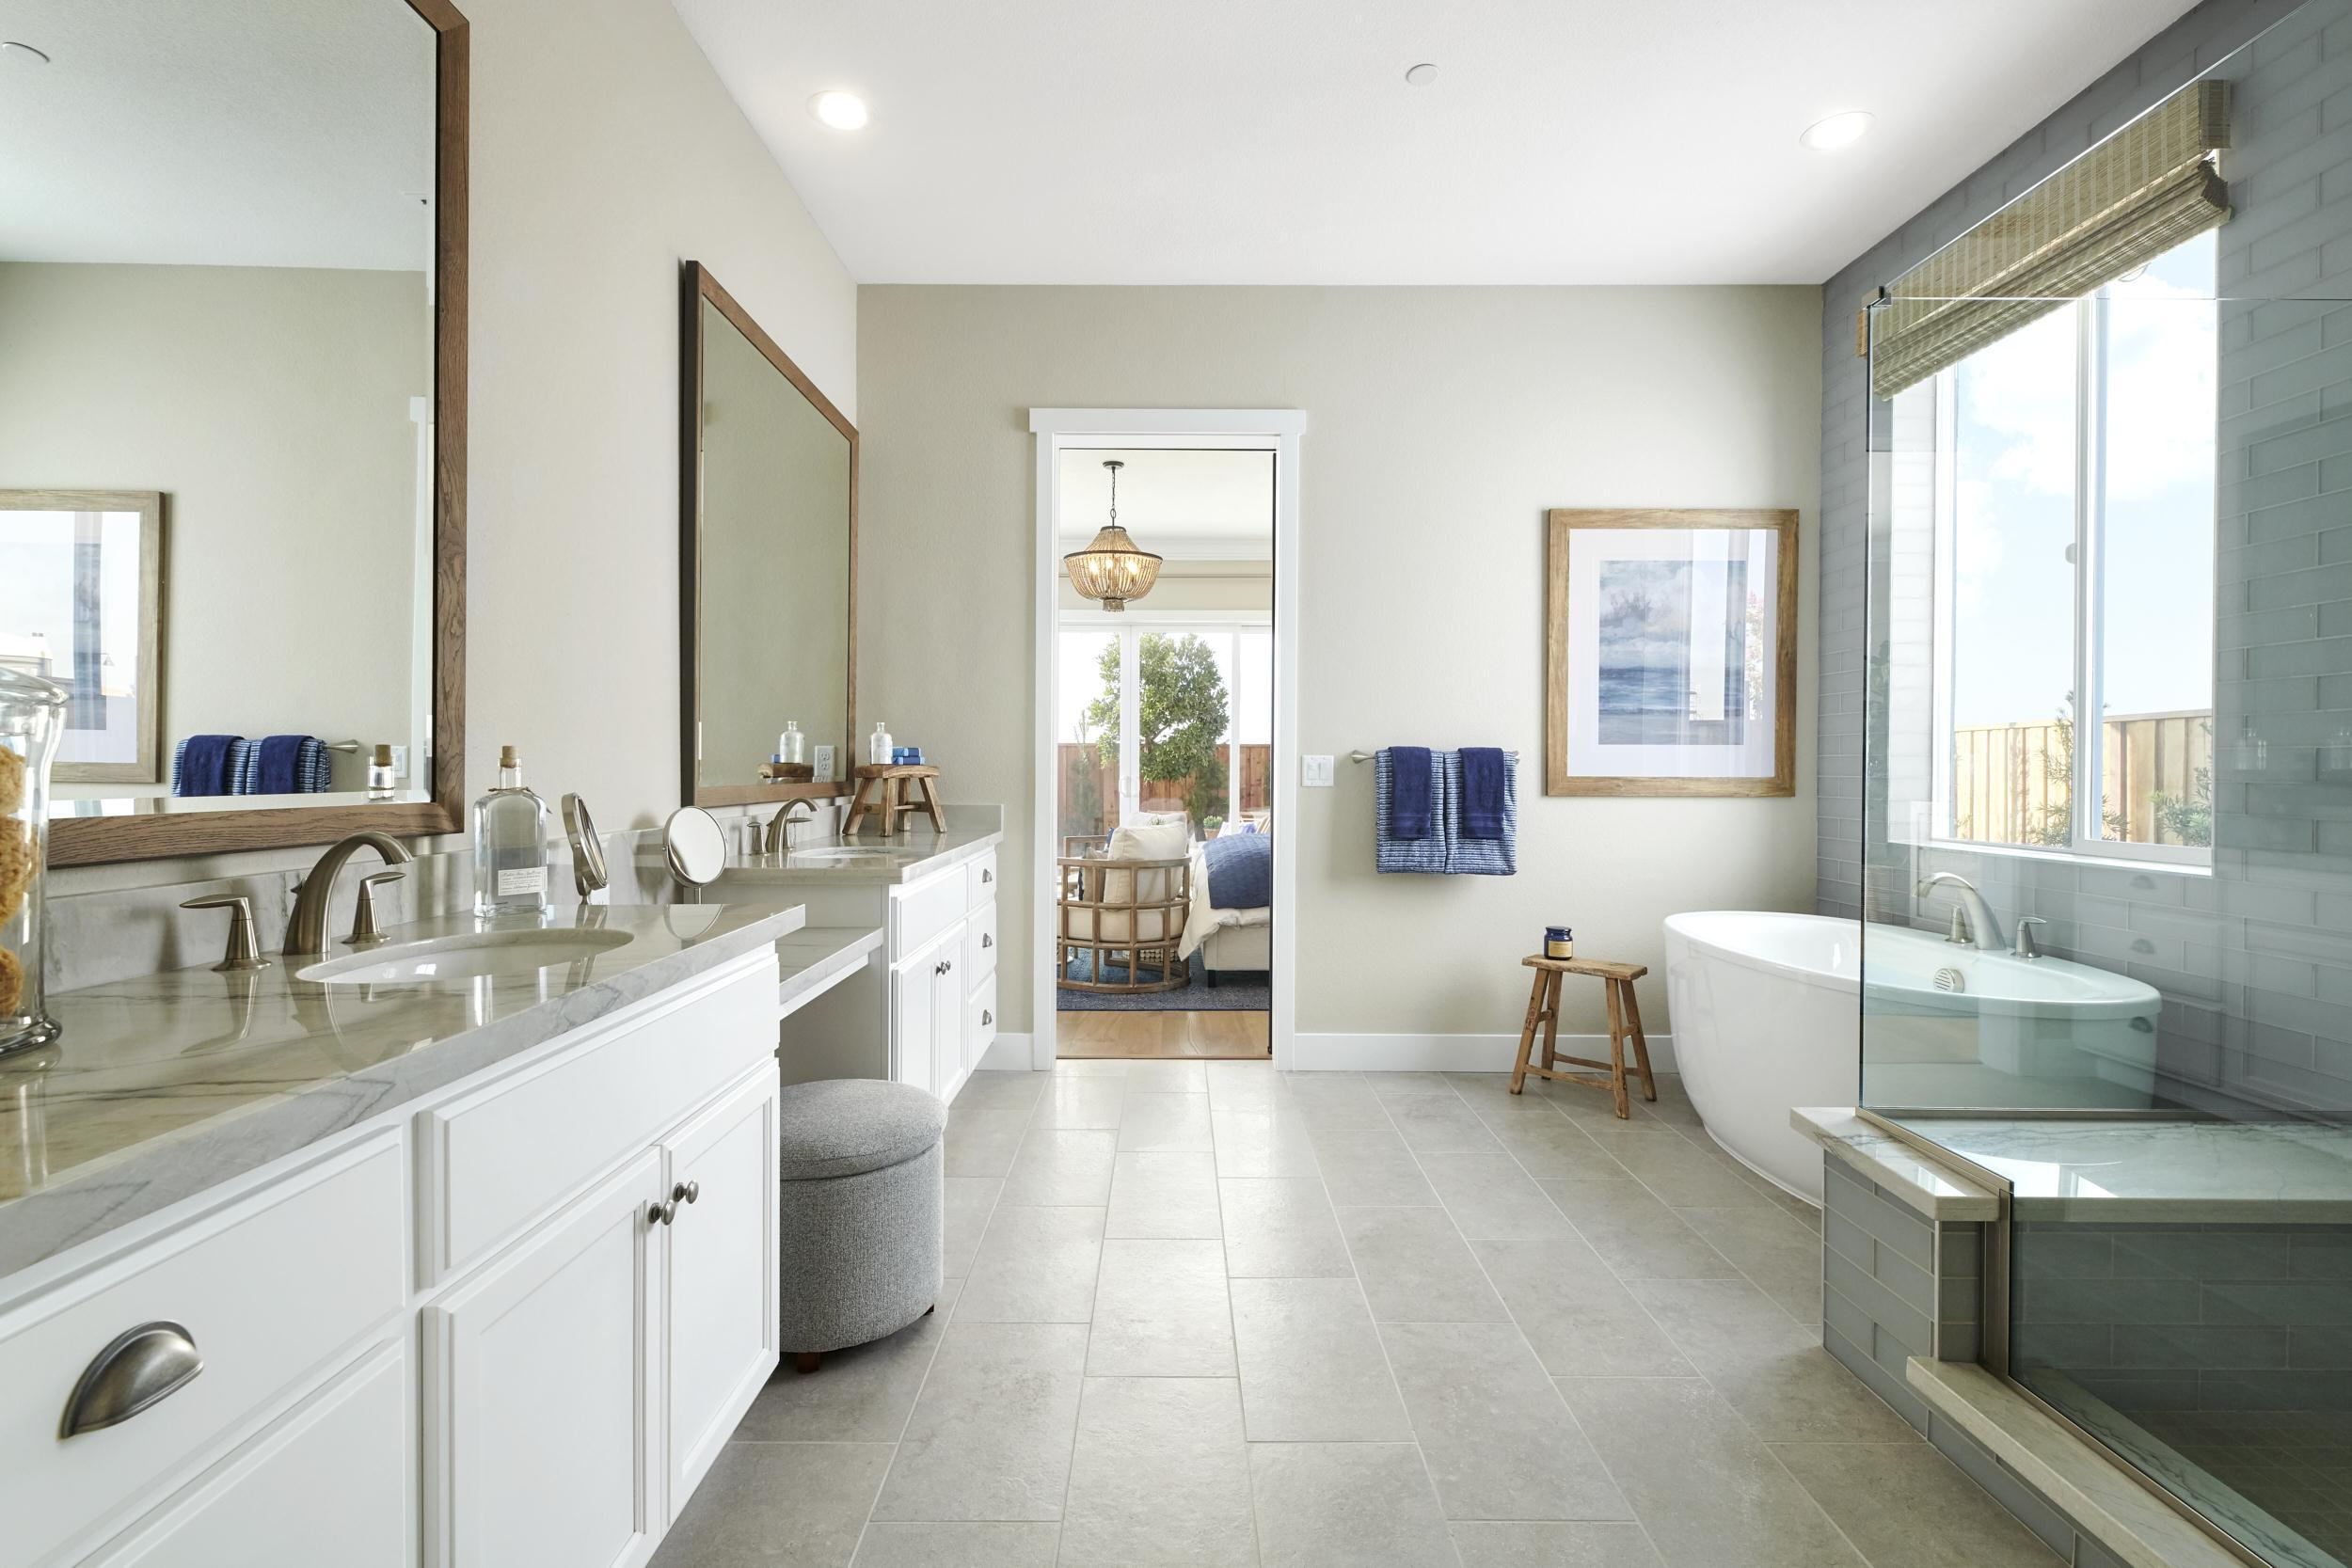 Bathroom featured in the Residence 2 By Trumark Homes in Stockton-Lodi, CA